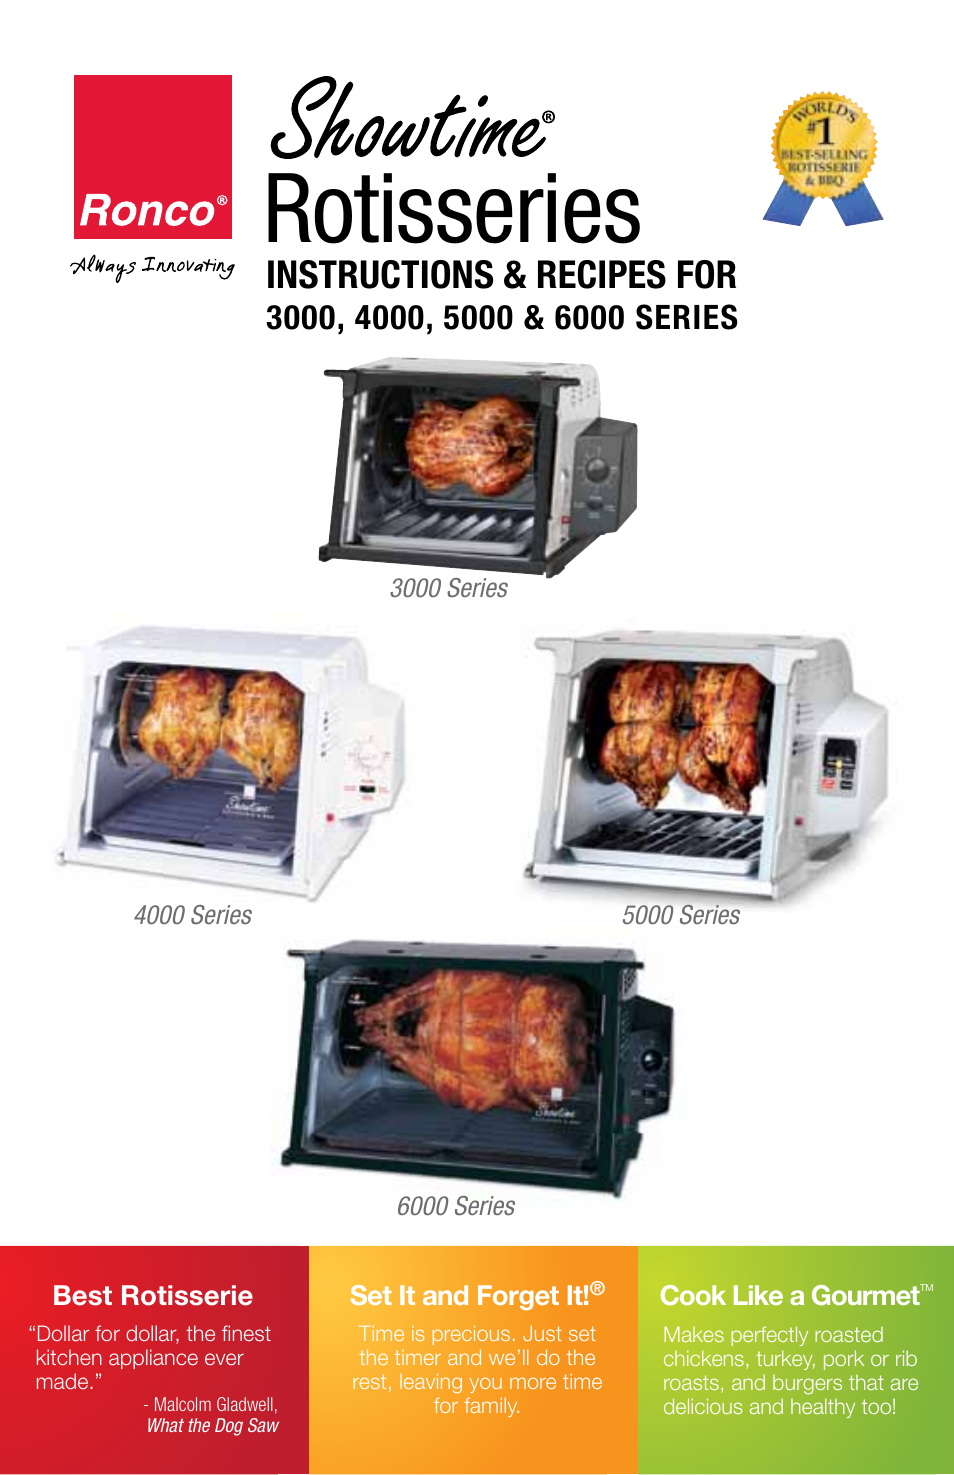 Ronco 5500 series stainless rotisserie oven user manual | 32 pages.